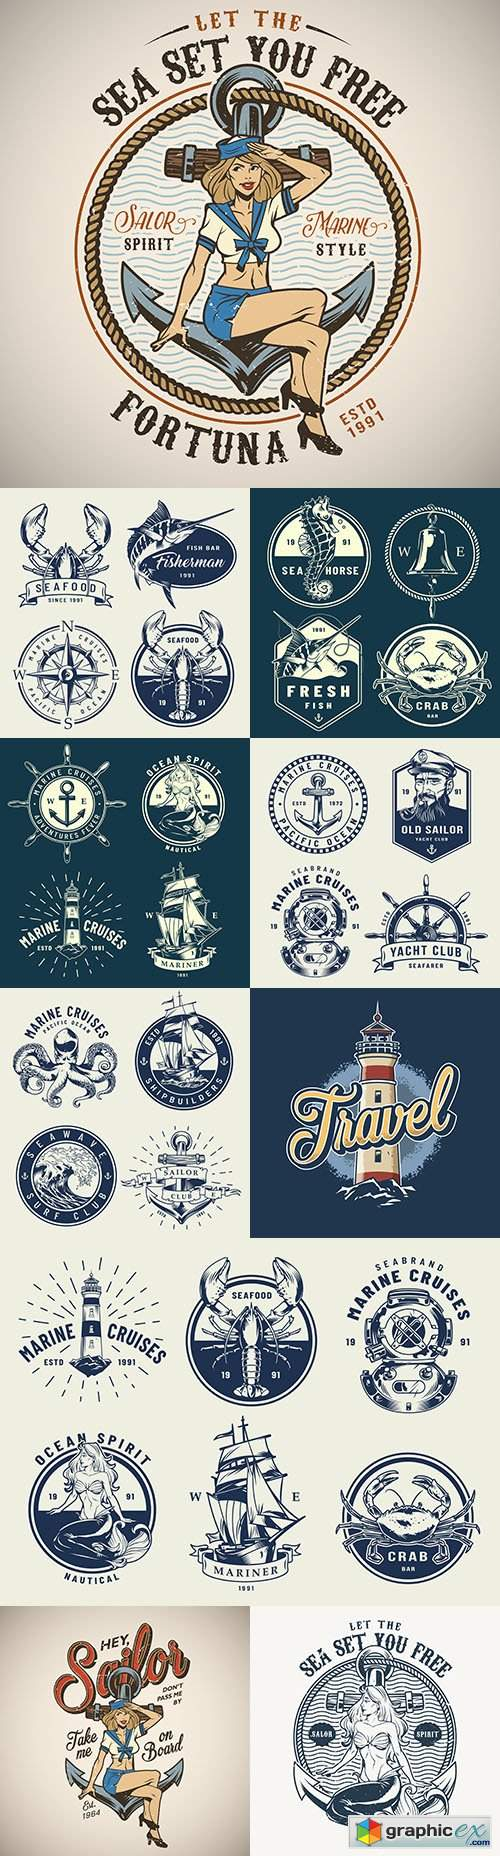 Vintage sea emblems and logos design collection